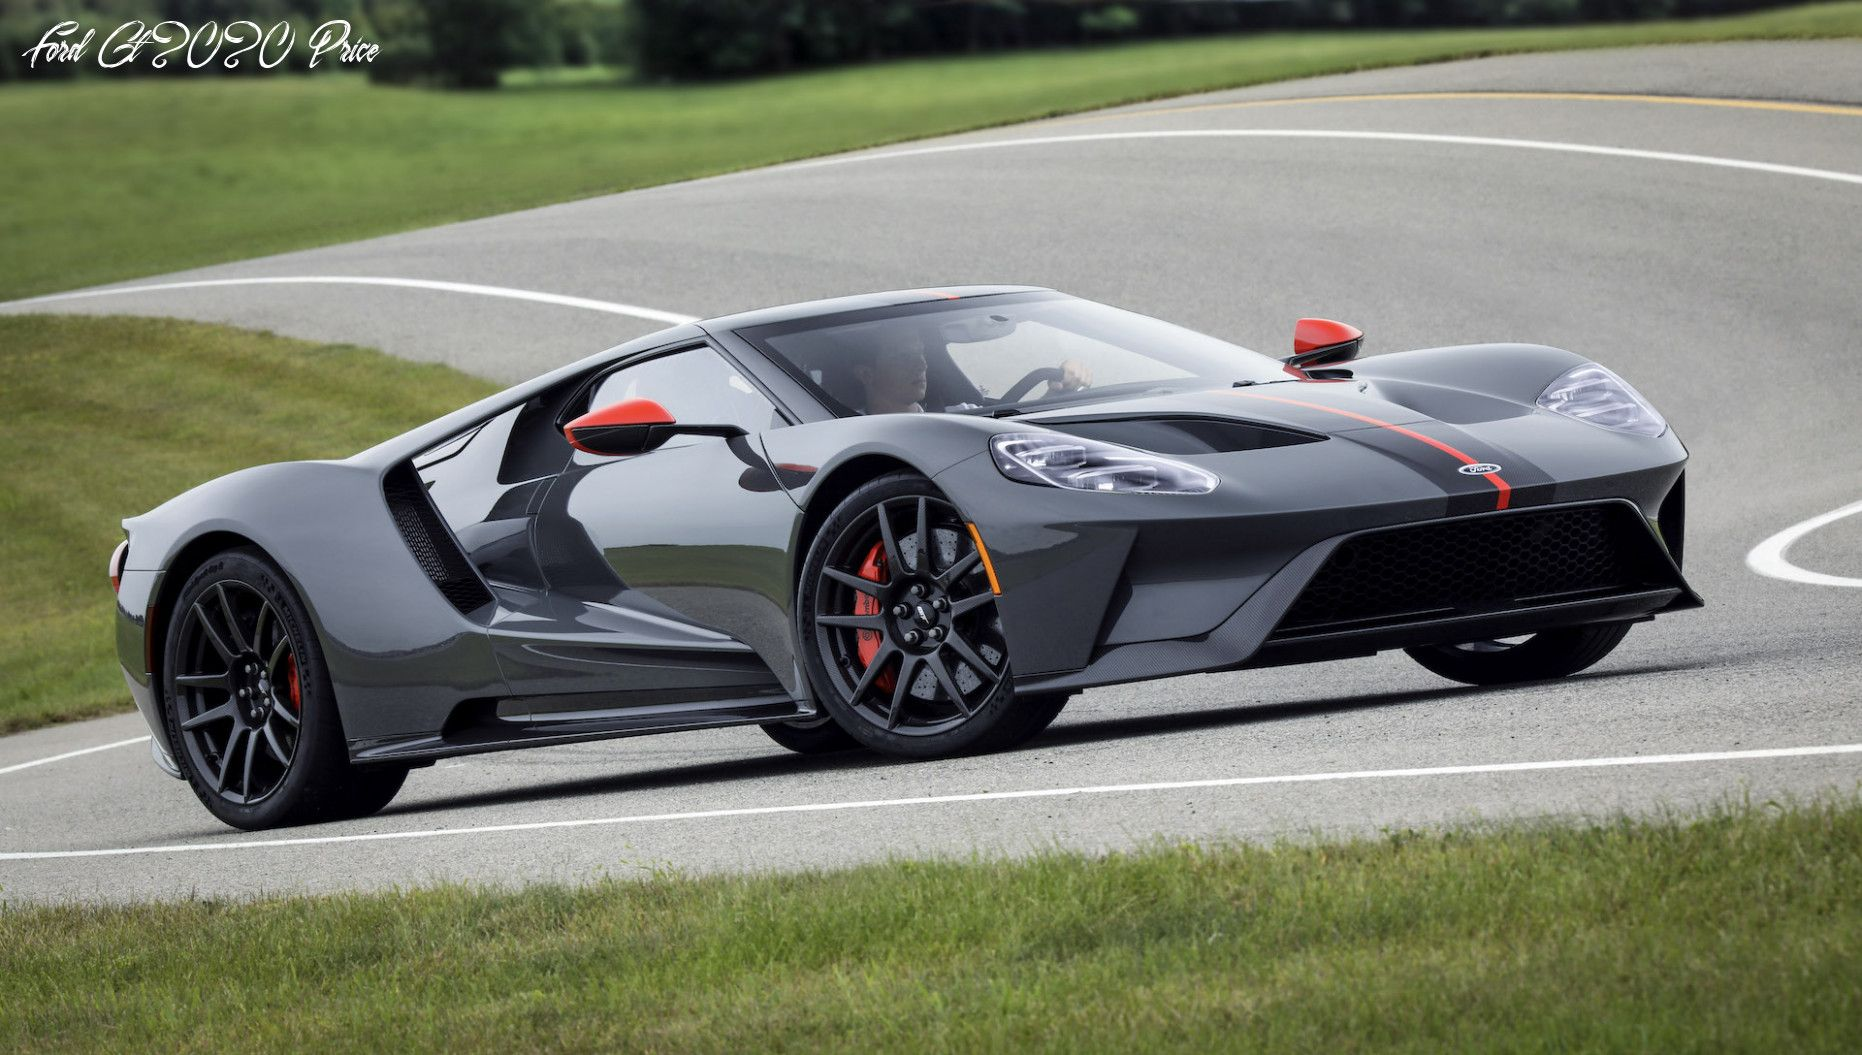 Ford Gt 2020 Price Images In 2020 Ford Gt Ford Sports Cars Ford Gt40